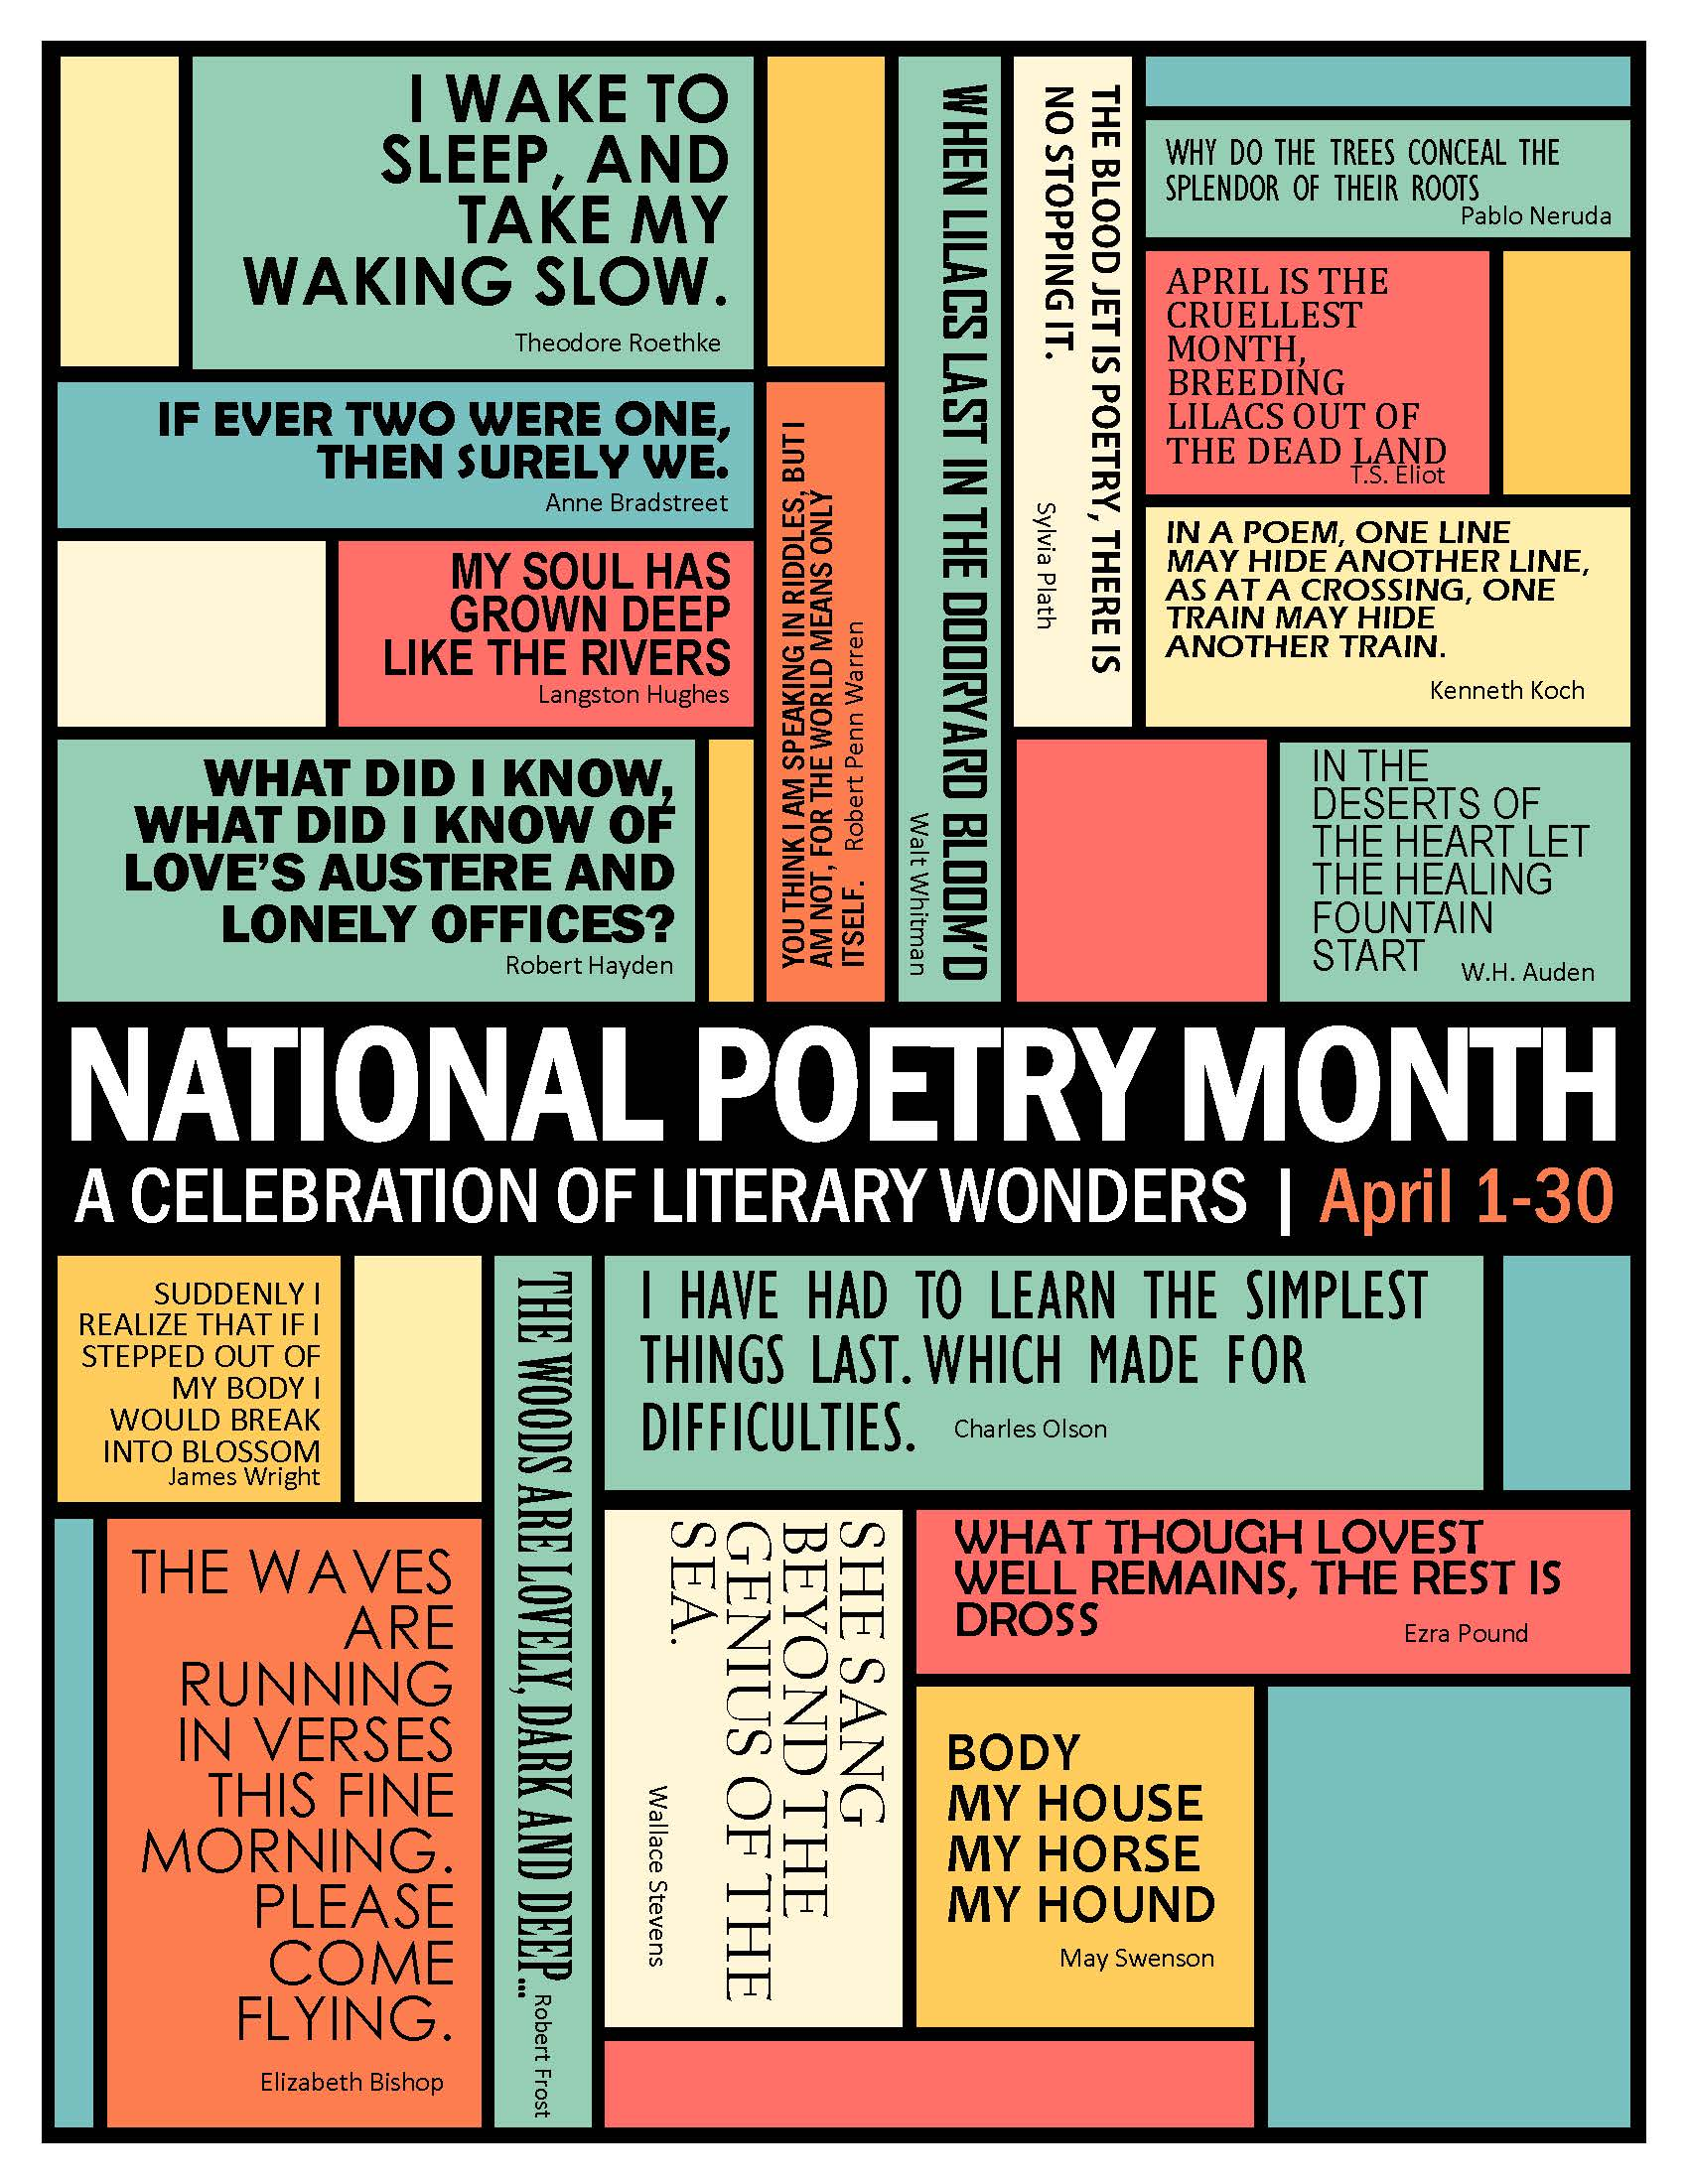 April 1 - 30th National Poetry Month